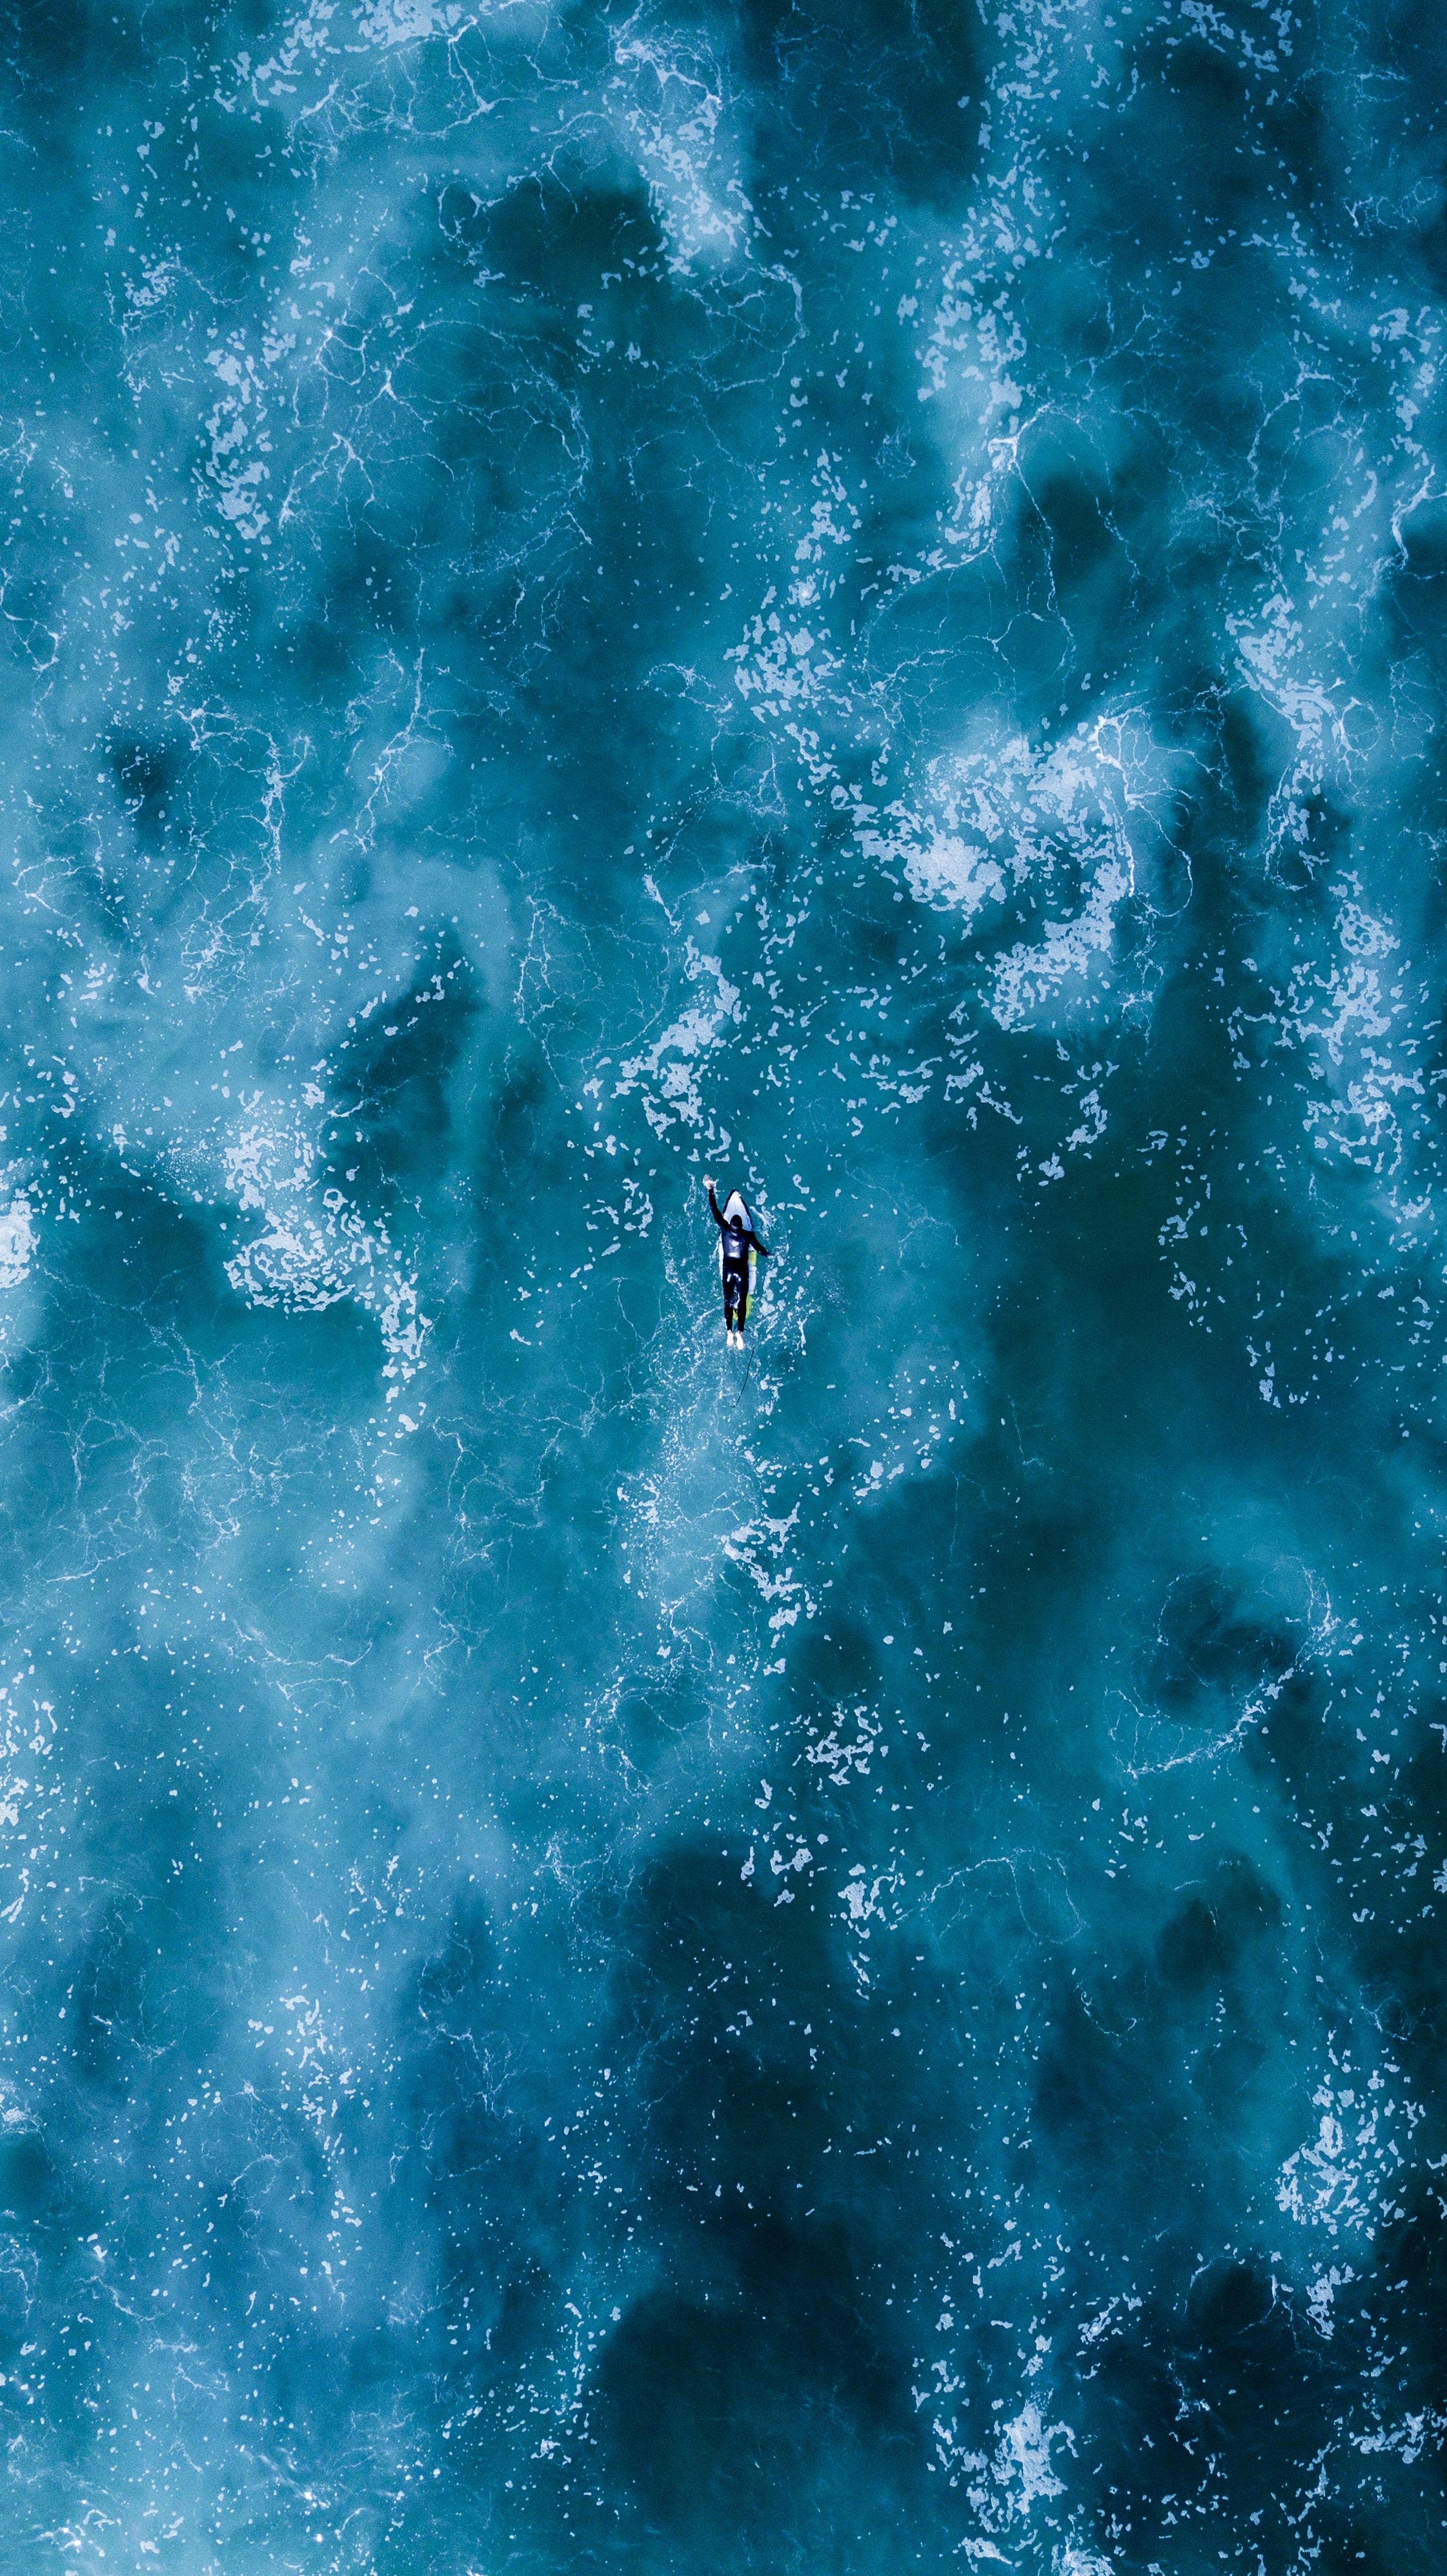 116682 download wallpaper Nature, Serfing, Ocean, View From Above, Waves screensavers and pictures for free